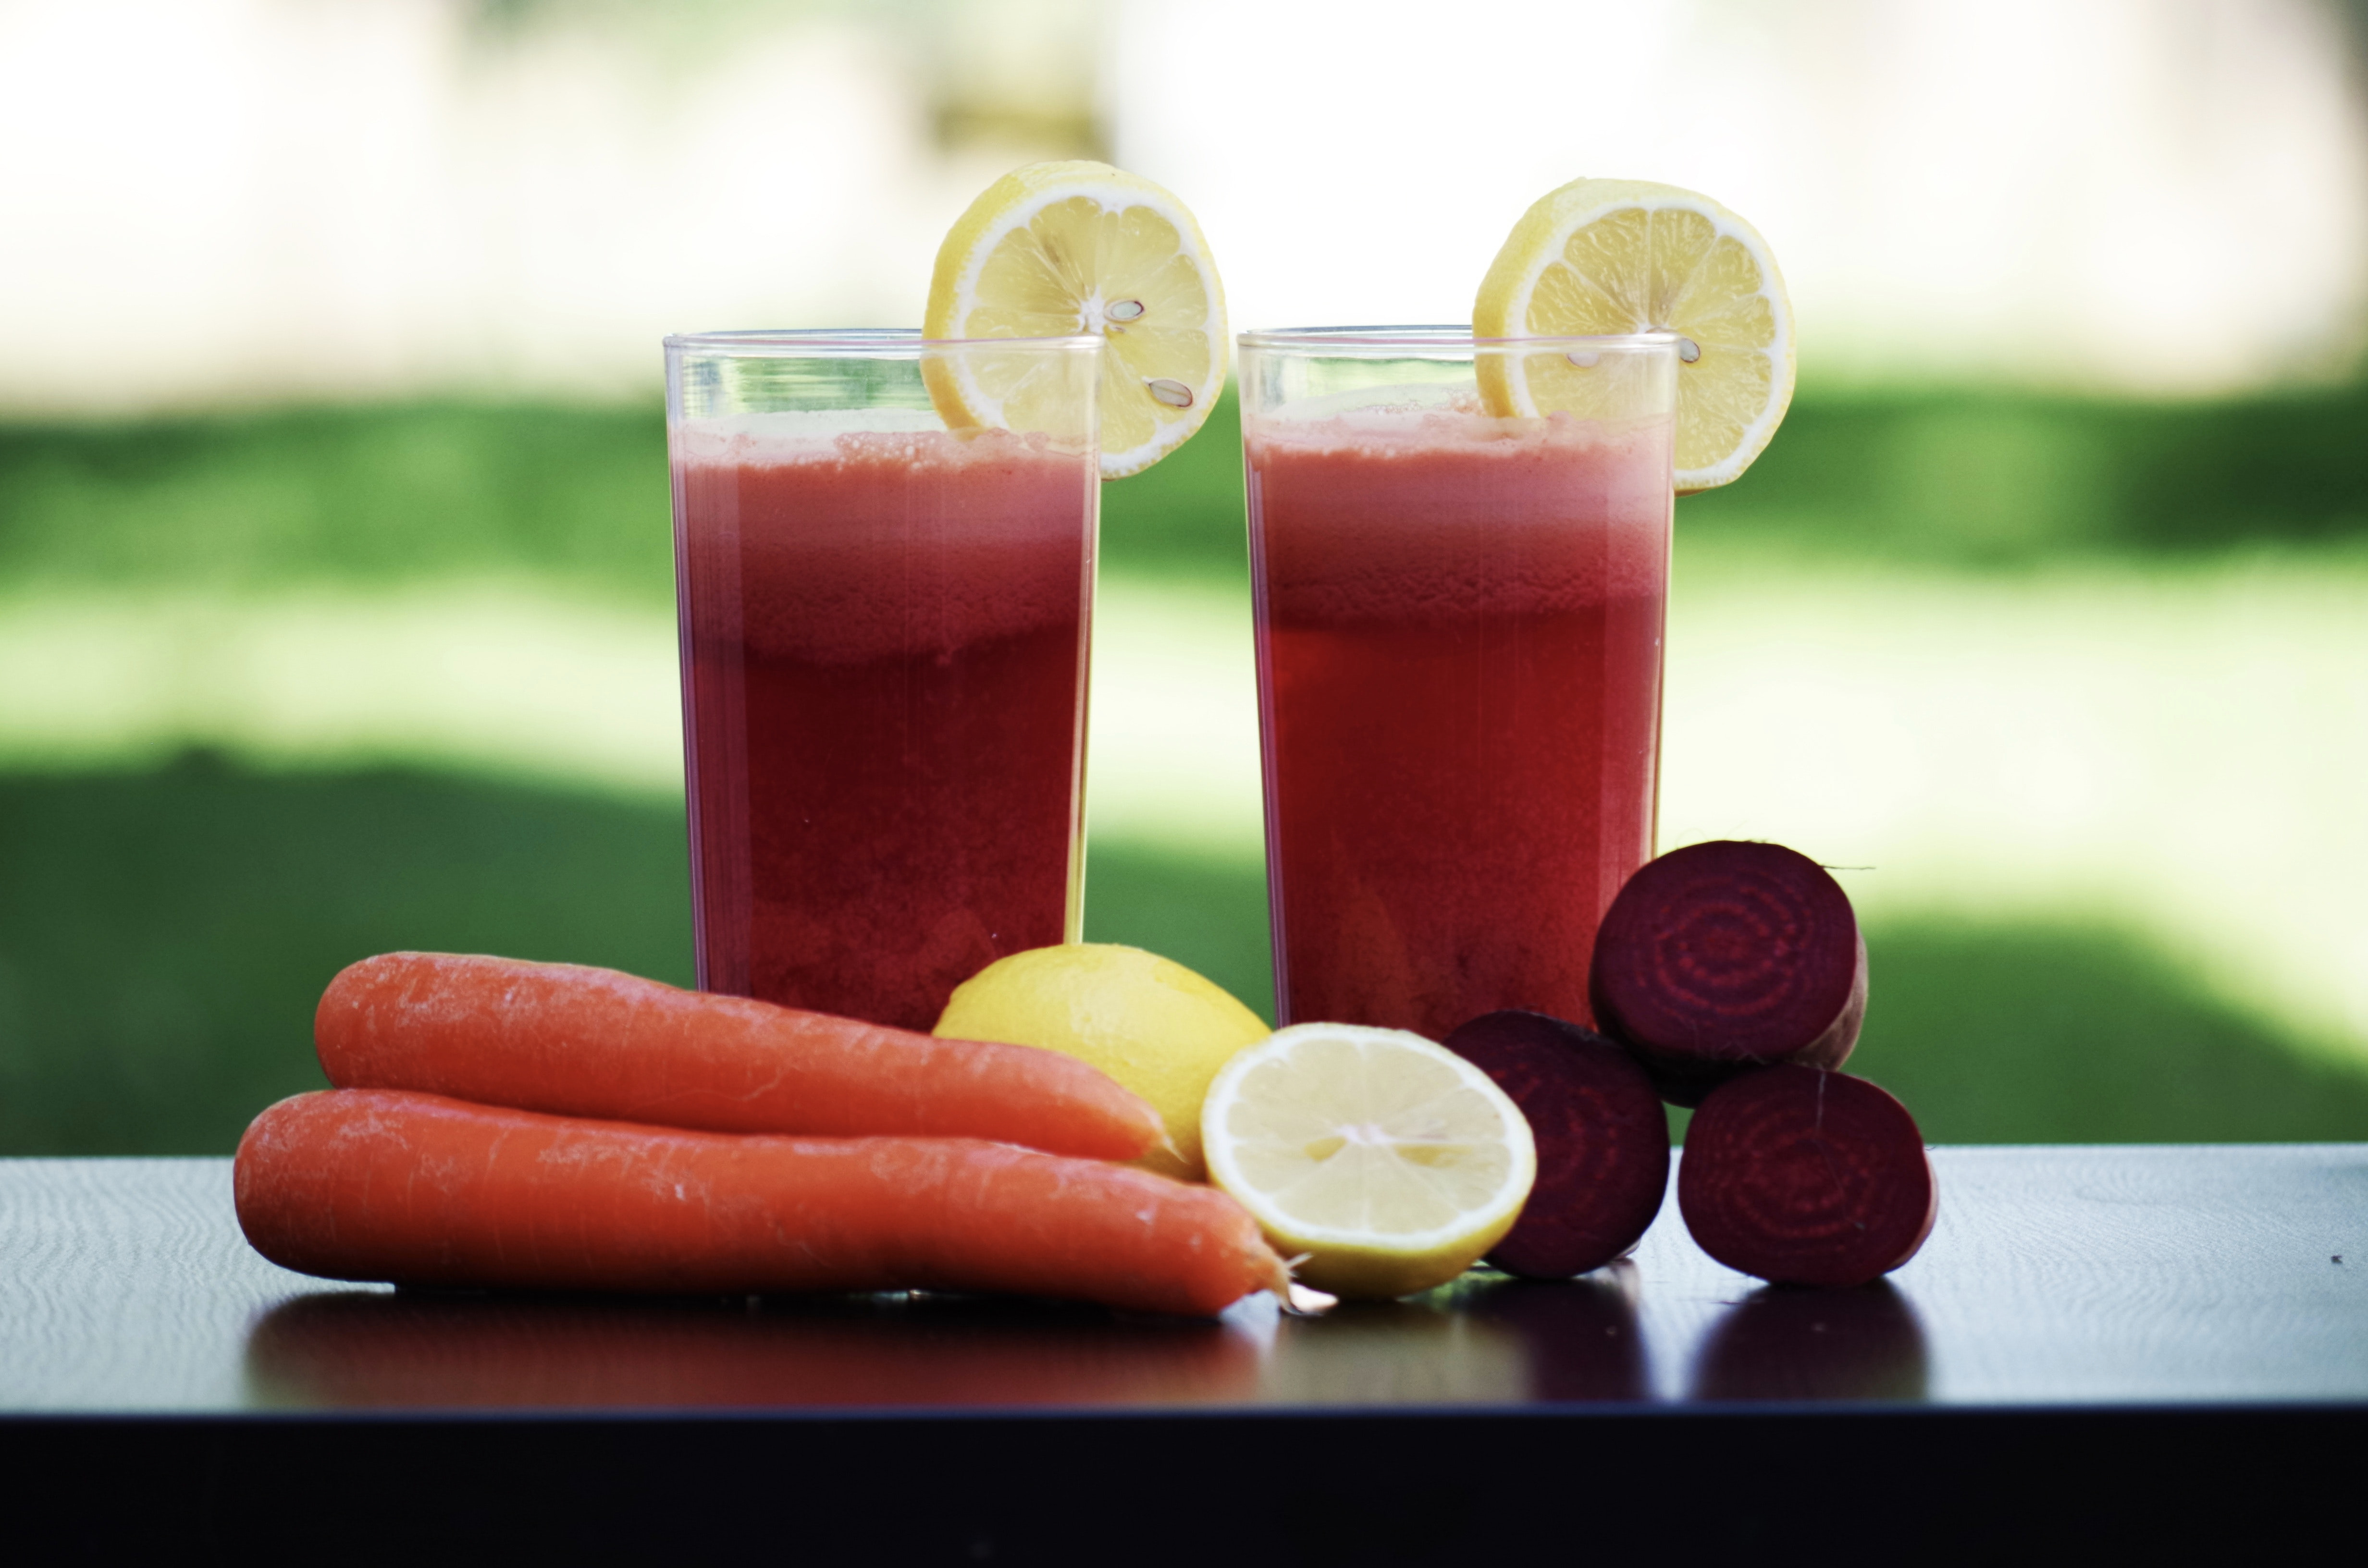 Build A Better Smoothie Quick Nutrition That Goes Down Easy For Cancer Patients